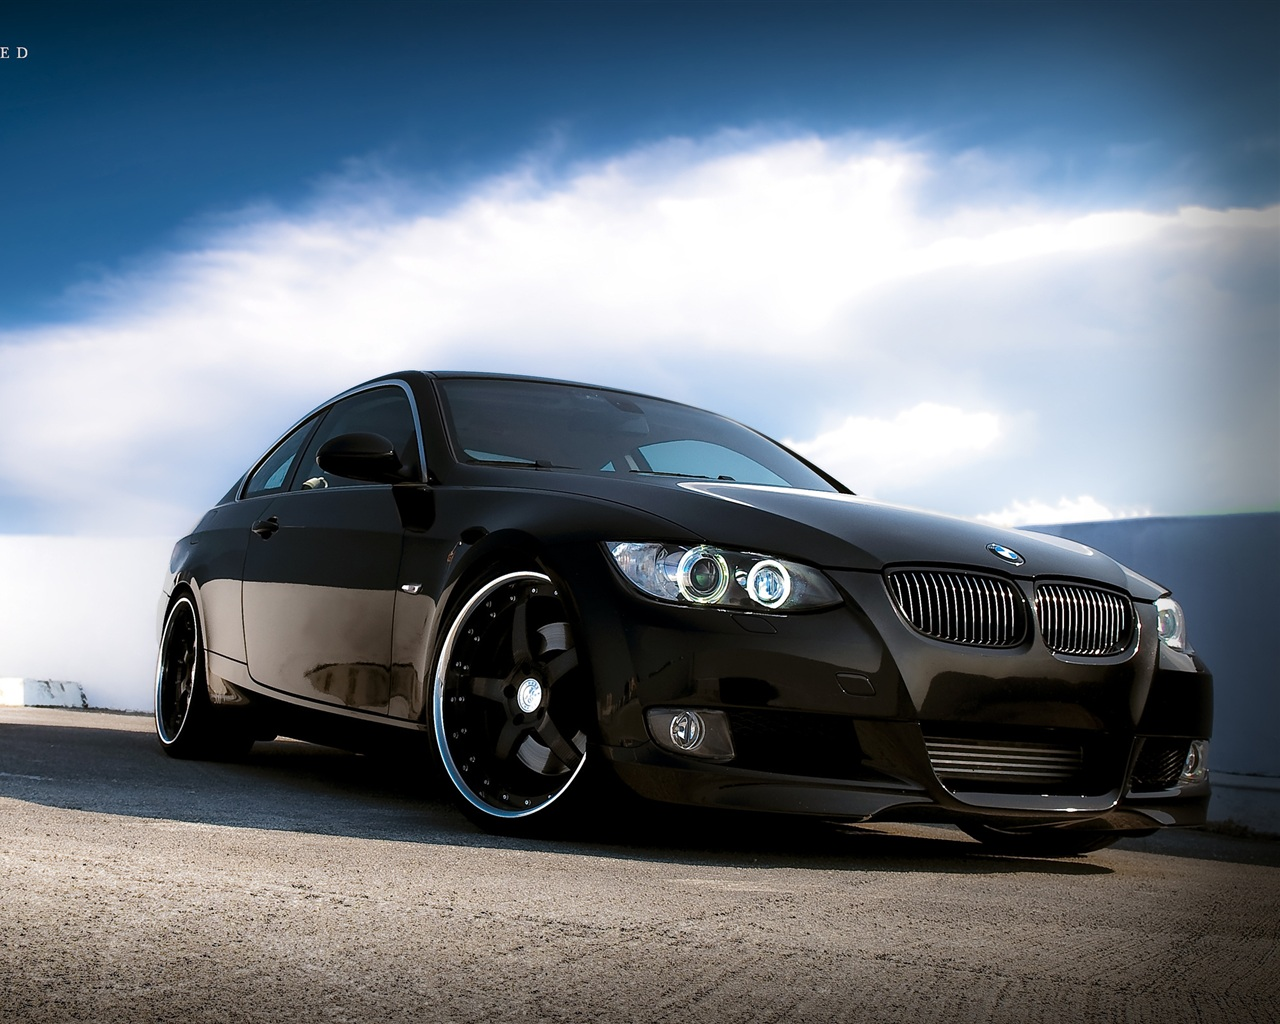 Wallpaper Bmw Car Black Color 2560x1600 Hd Picture Image